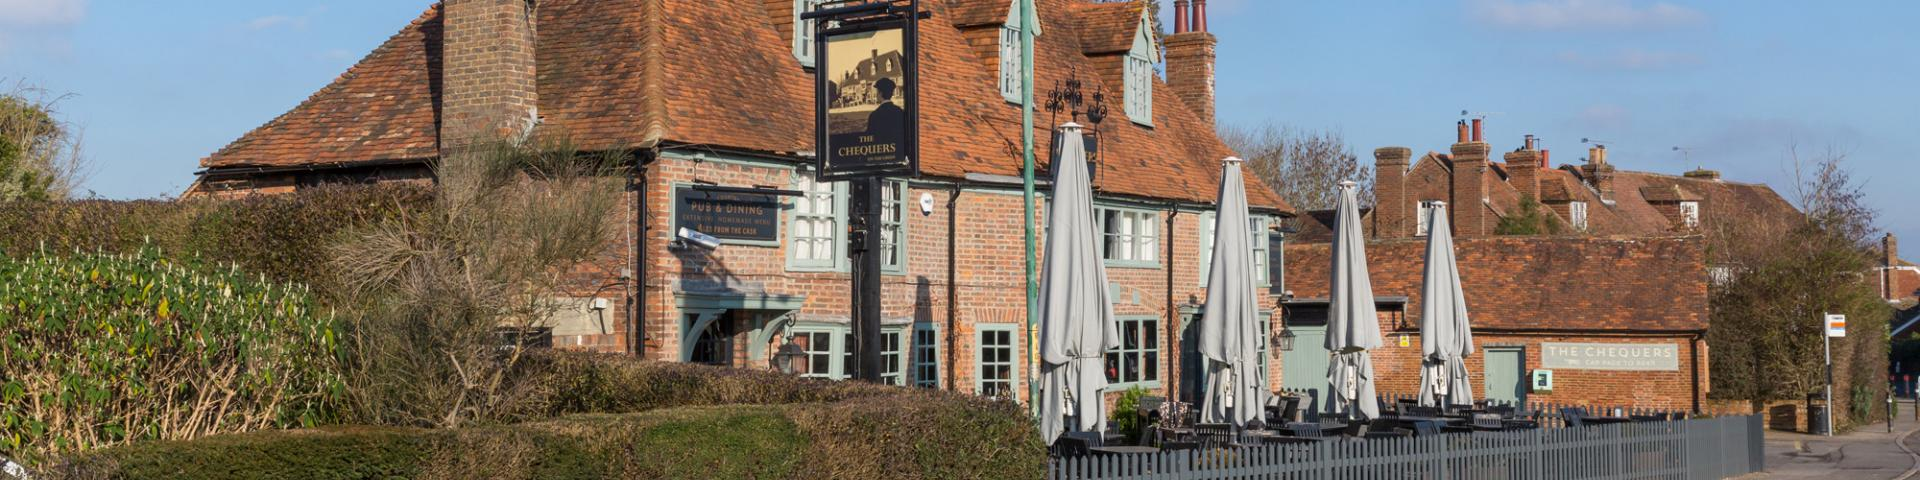 Chequers on the Green, High Halden, Ashford